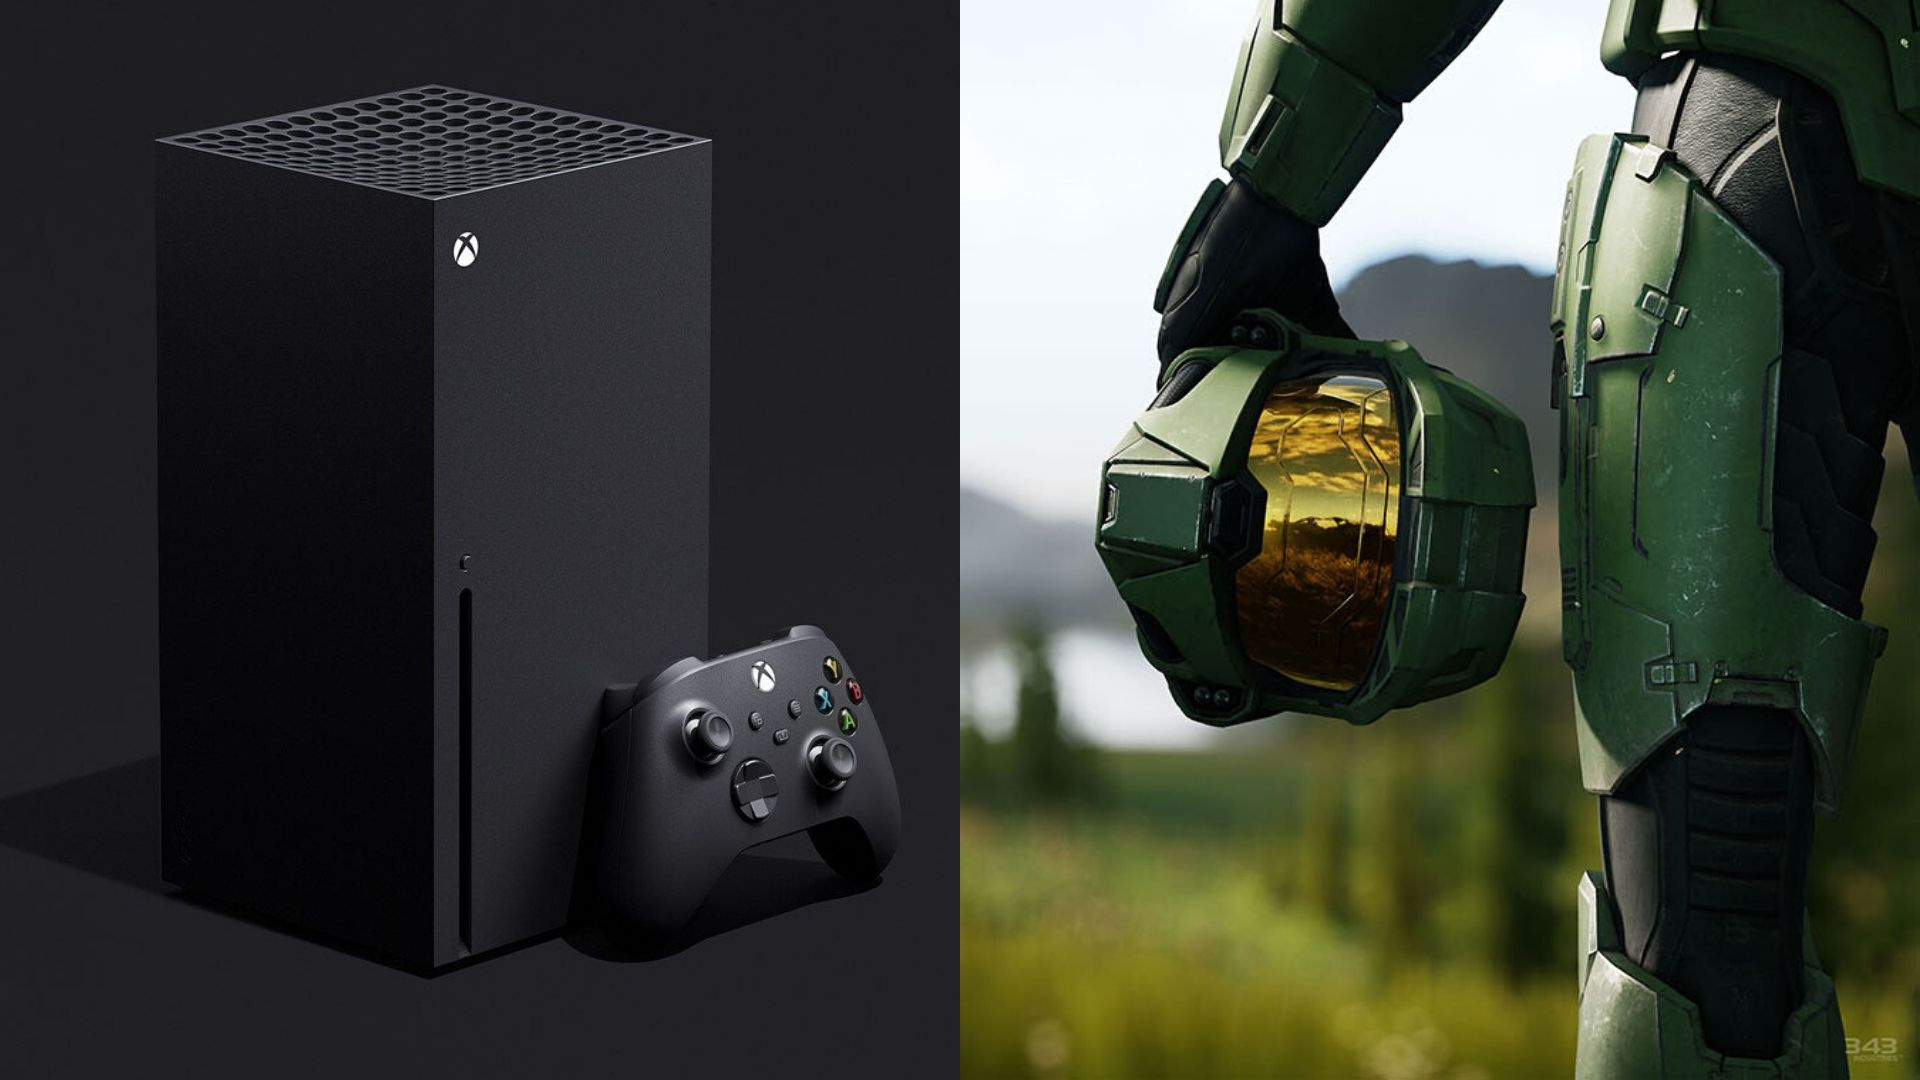 The Xbox Series X And Halo Infinite Are Still On Track Confirms Microsoft Xbox News